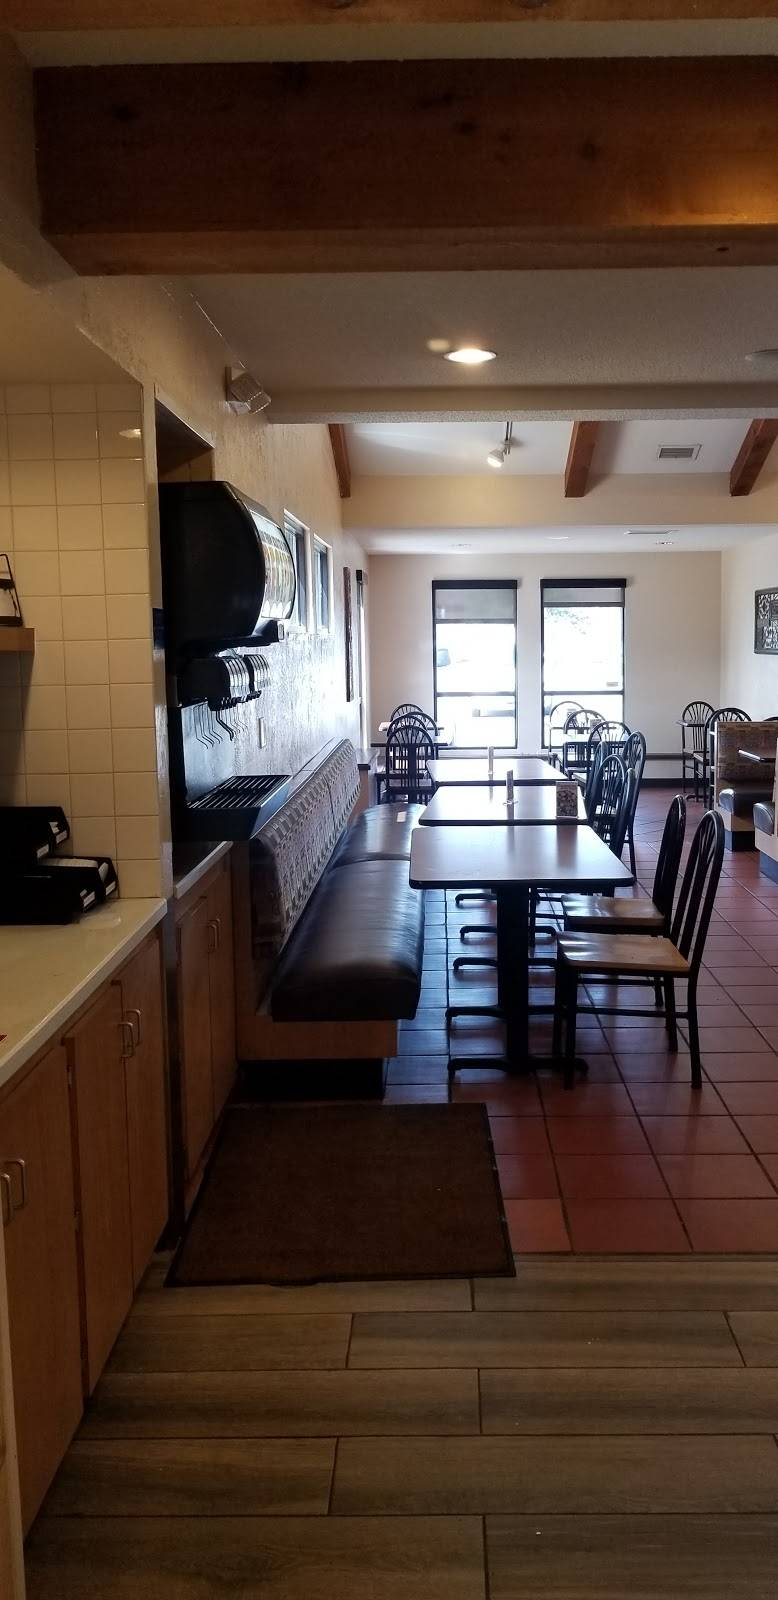 Amigos/Kings Classic - cafe  | Photo 6 of 9 | Address: 4200 S 14th St, Lincoln, NE 68502, USA | Phone: (402) 423-6794